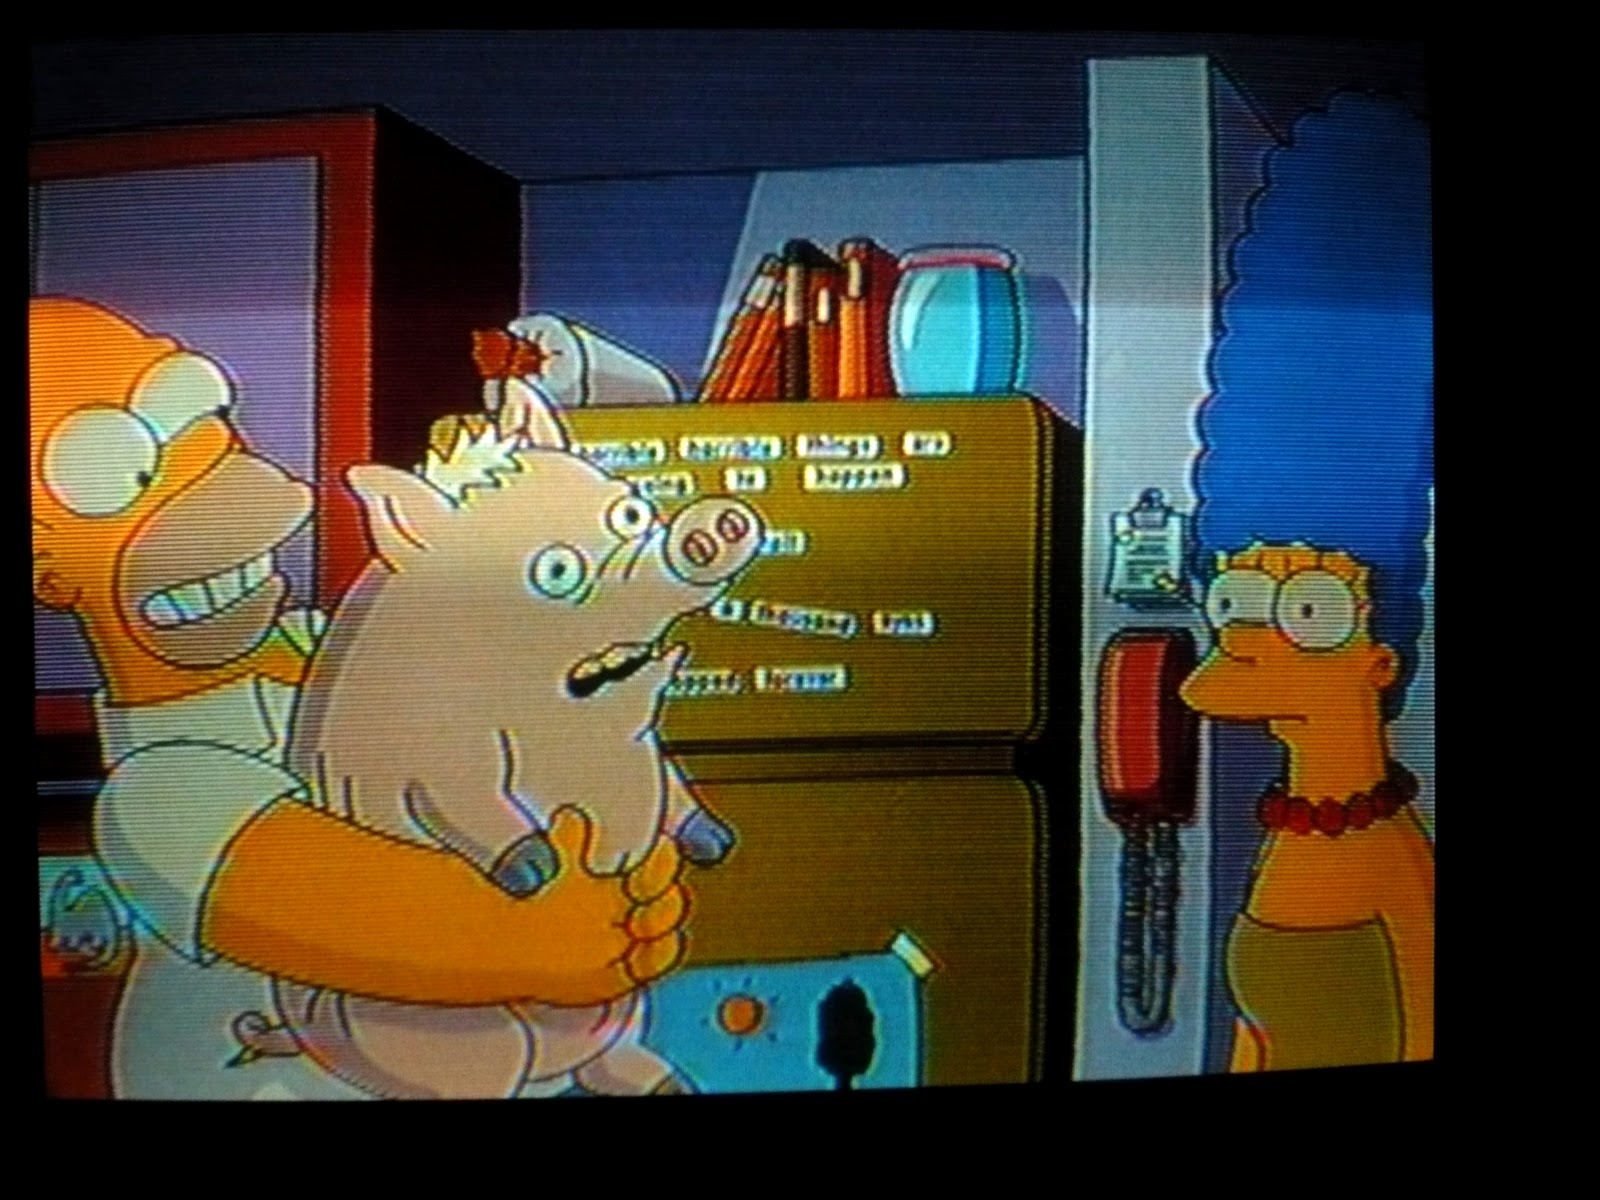 Blog globs october 2010 bestiality and pedophilia themes in the simpsons movie buycottarizona